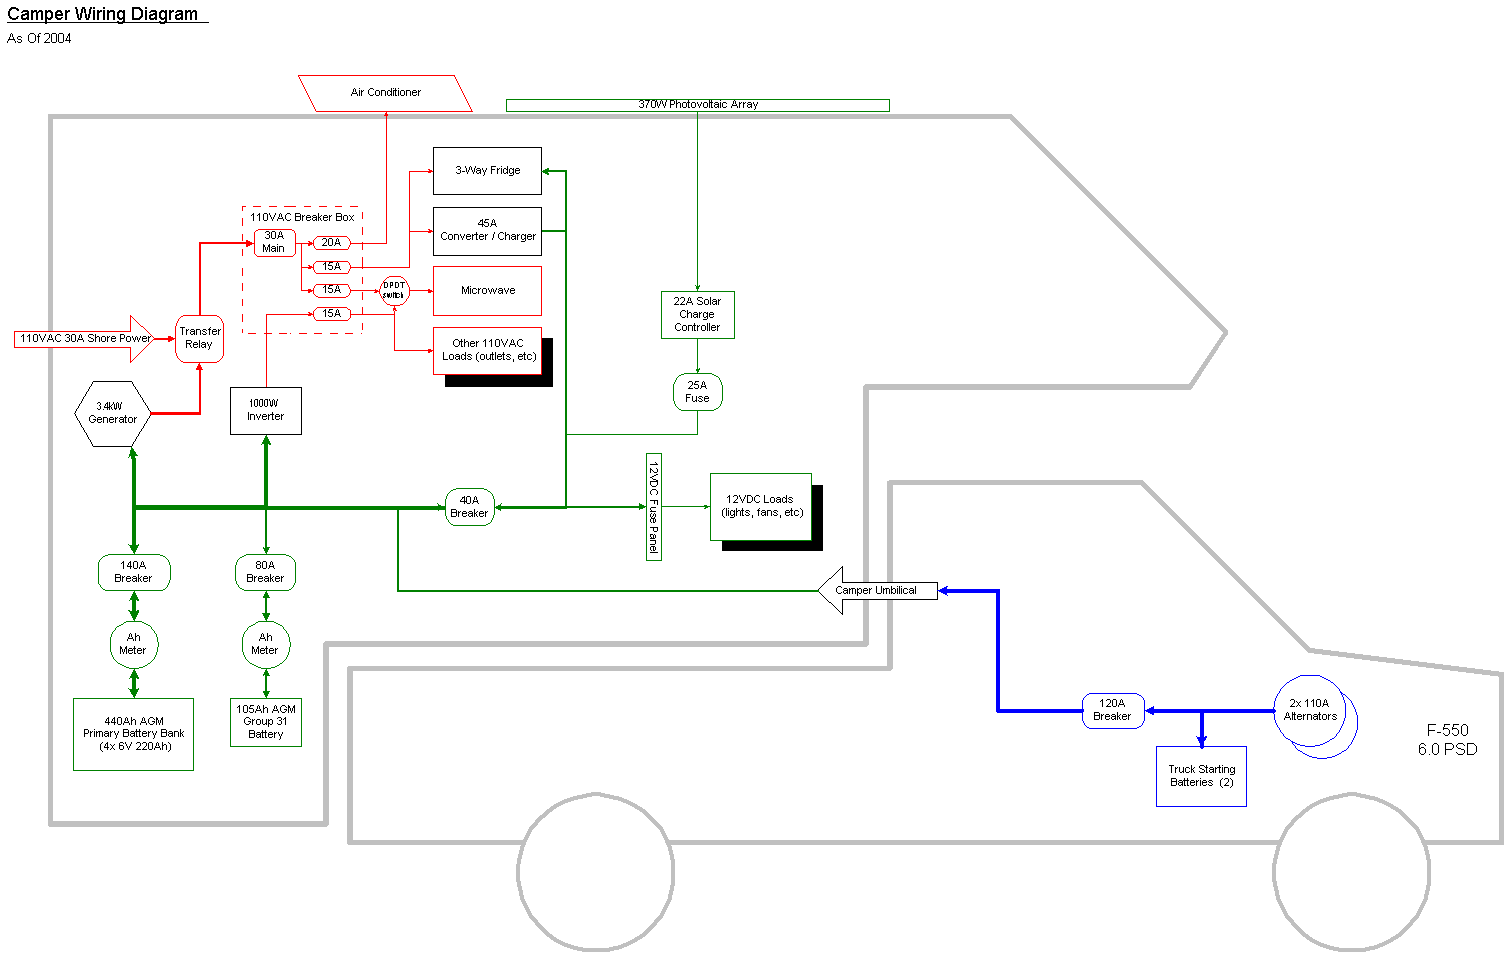 2004Diagram camper wiring diagram truck wiring diagrams instruction lance truck camper wiring diagram at gsmx.co